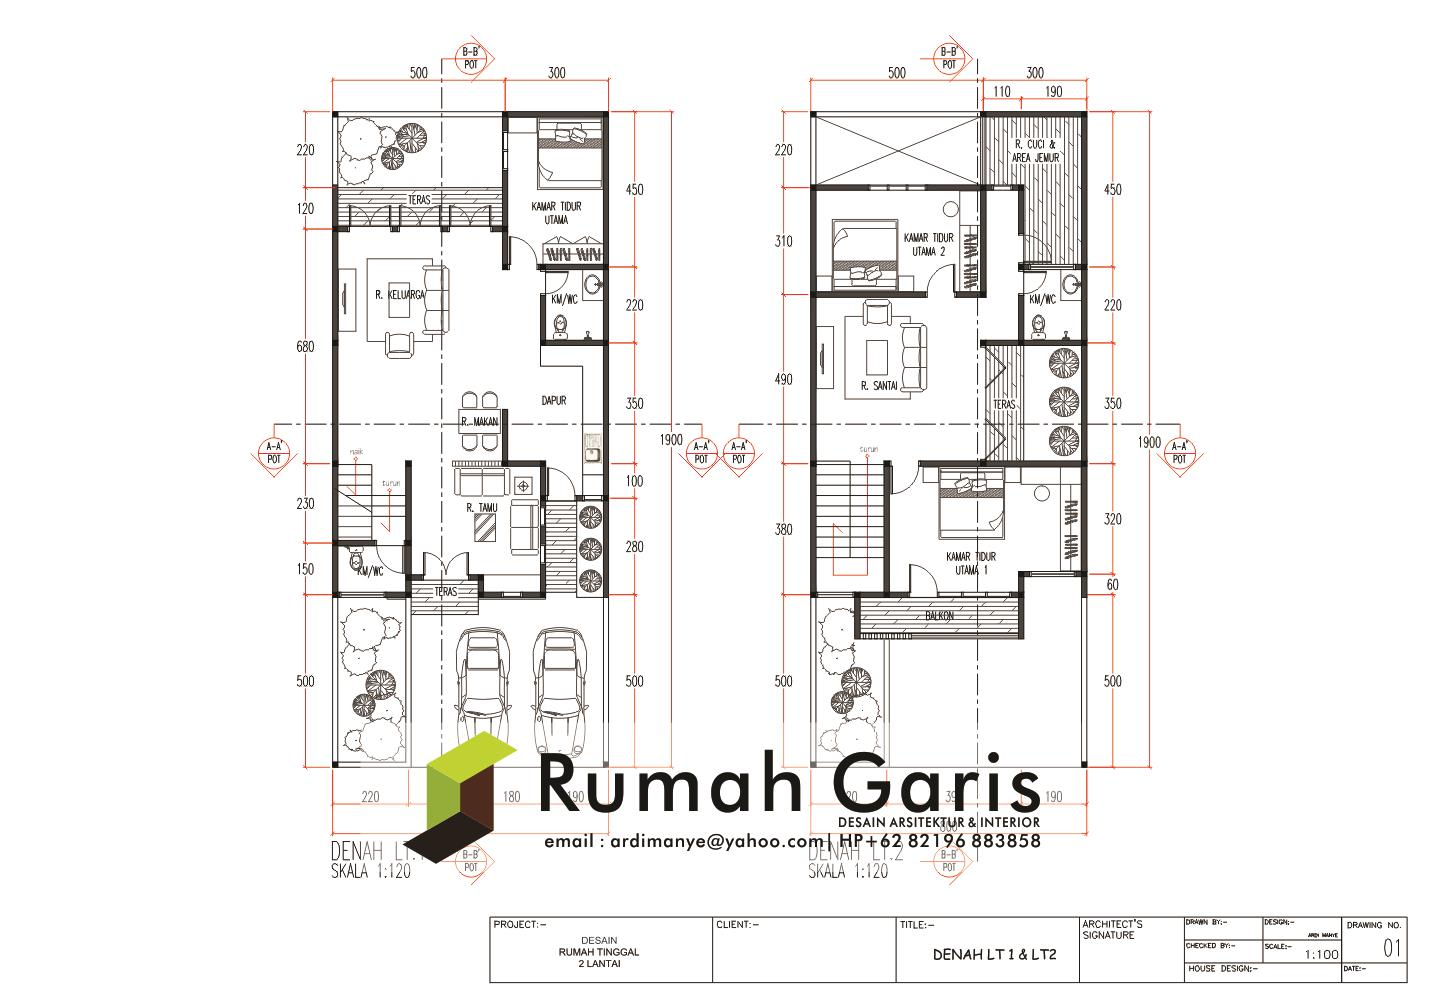 desain interior rumah pdf with Titik Garis Blogspot on 301389400044362698 additionally Zigloo domestique hd additionally Perspective Drawing Ex les in addition 2 Point Perspective moreover Download Gambar Autocad Detail Tangga 29.